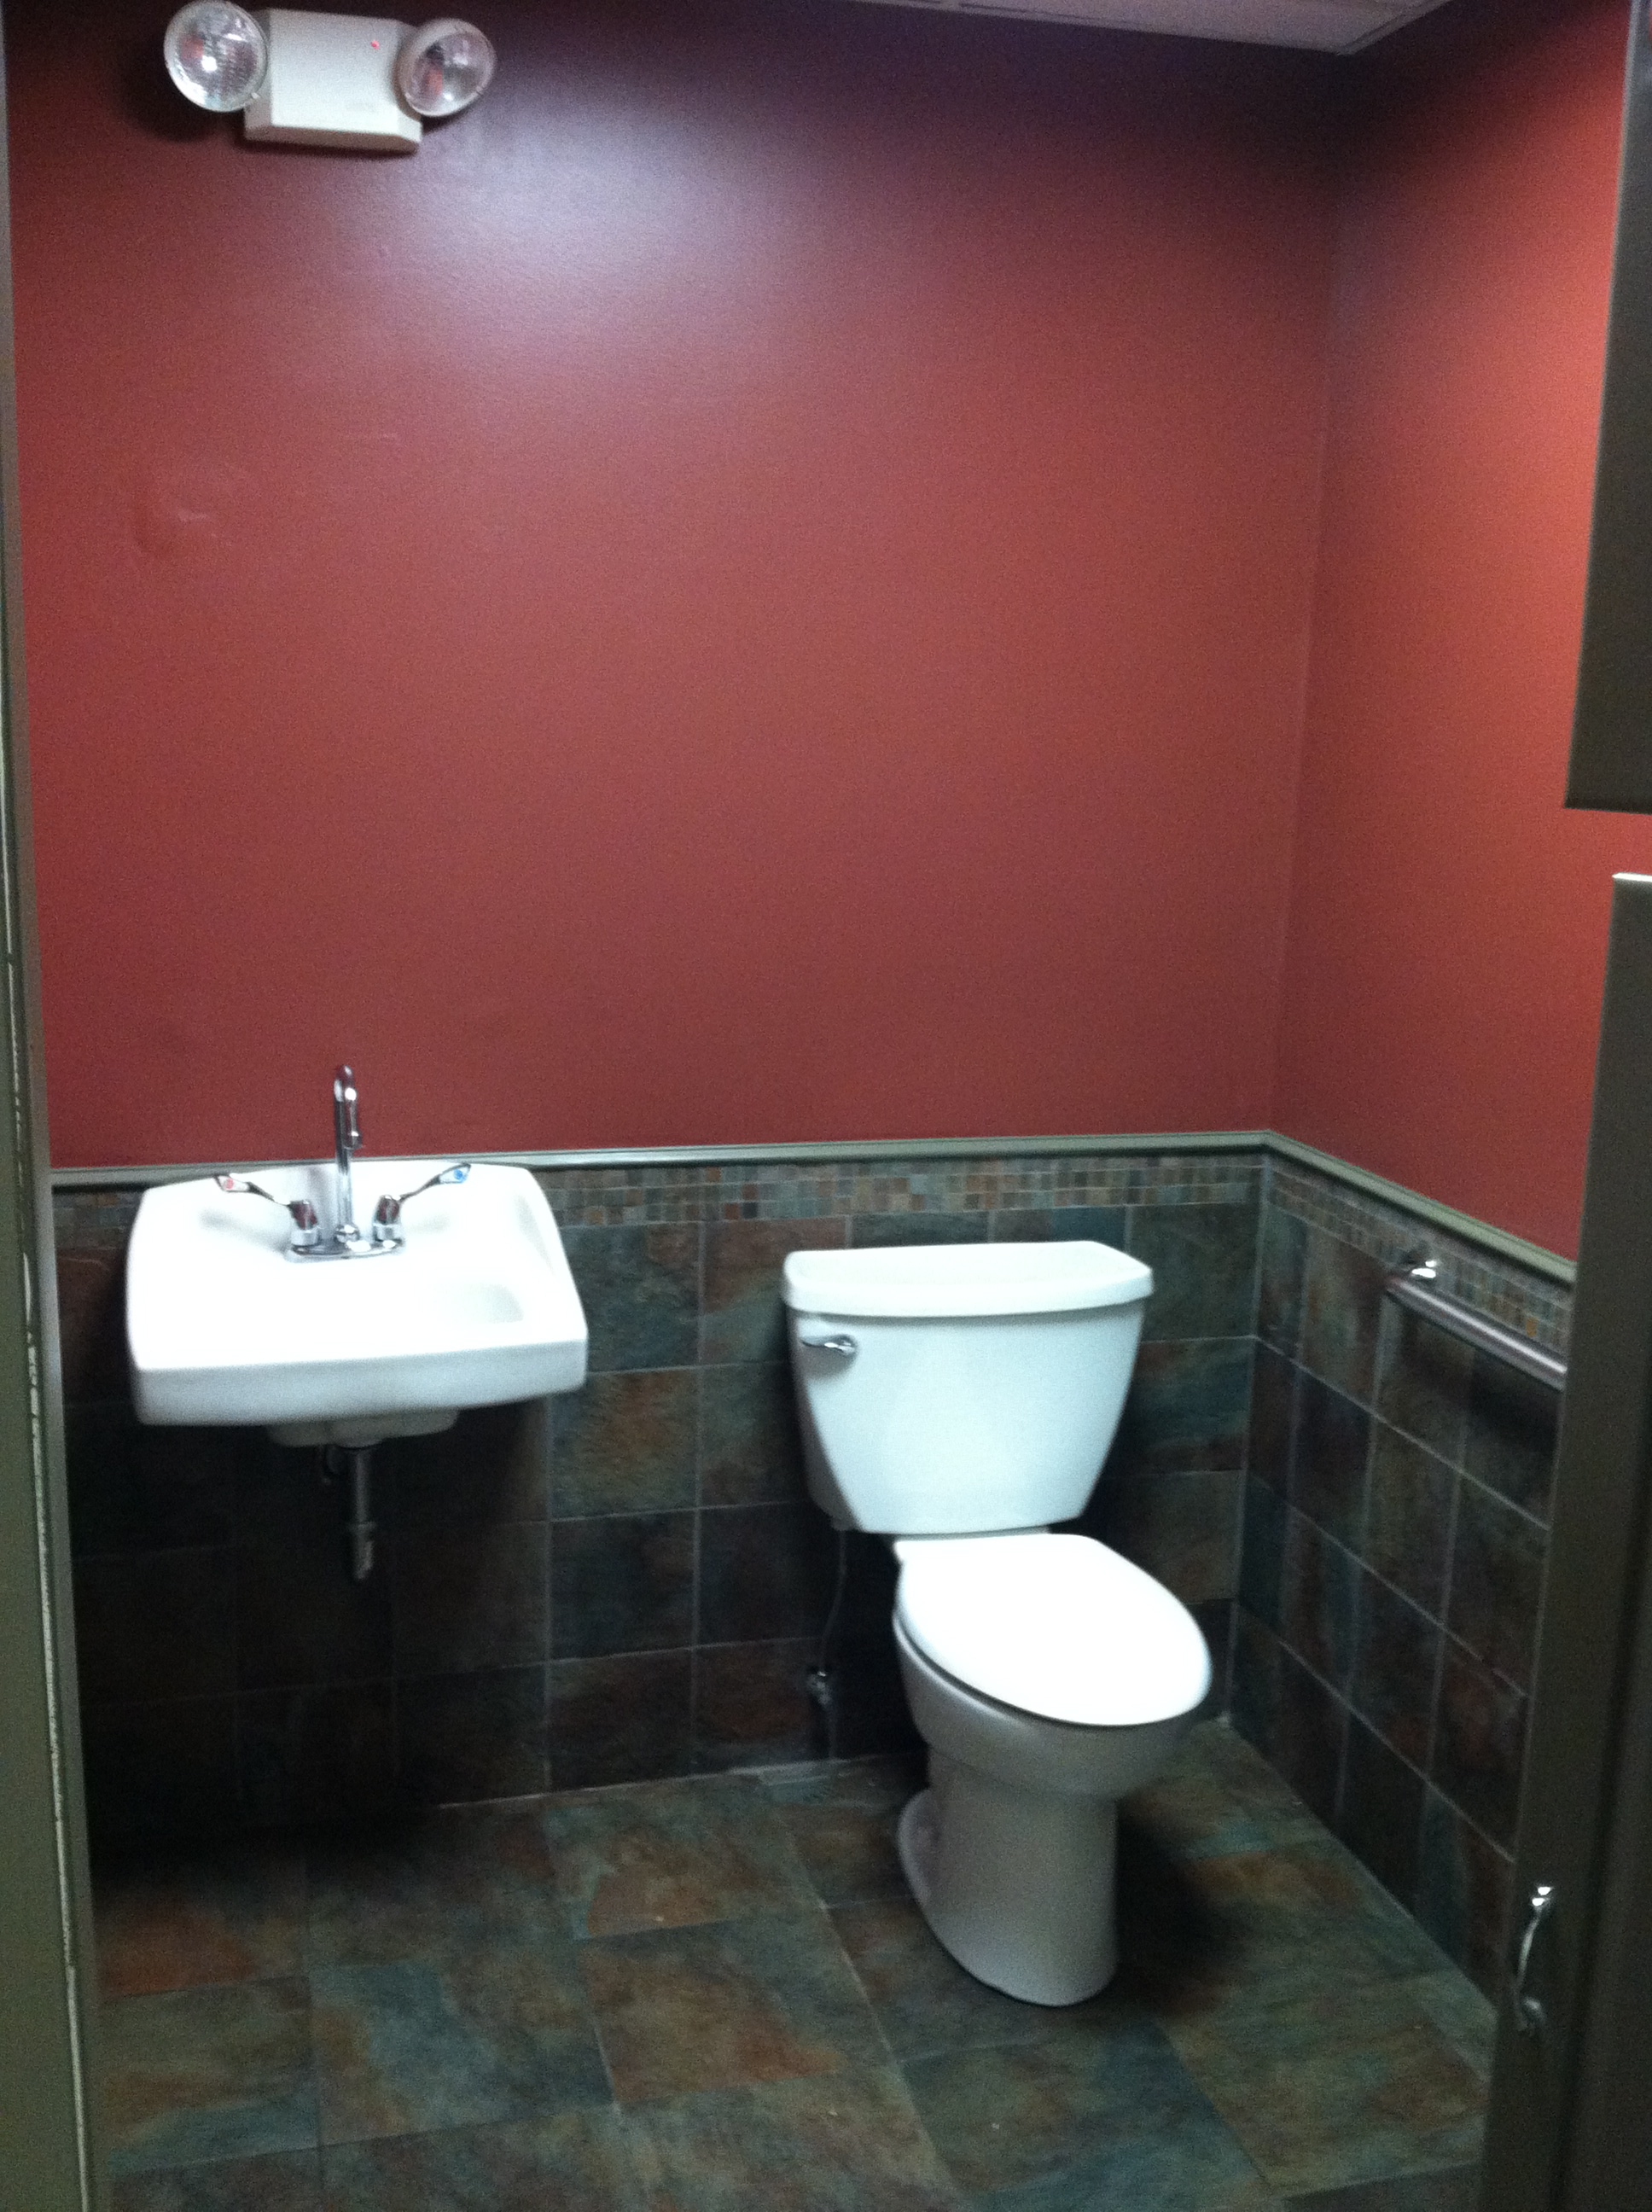 Ada Commercial Bathroom 28 Images Ada Bathroom Dimensions And Guidelines For Accessible And